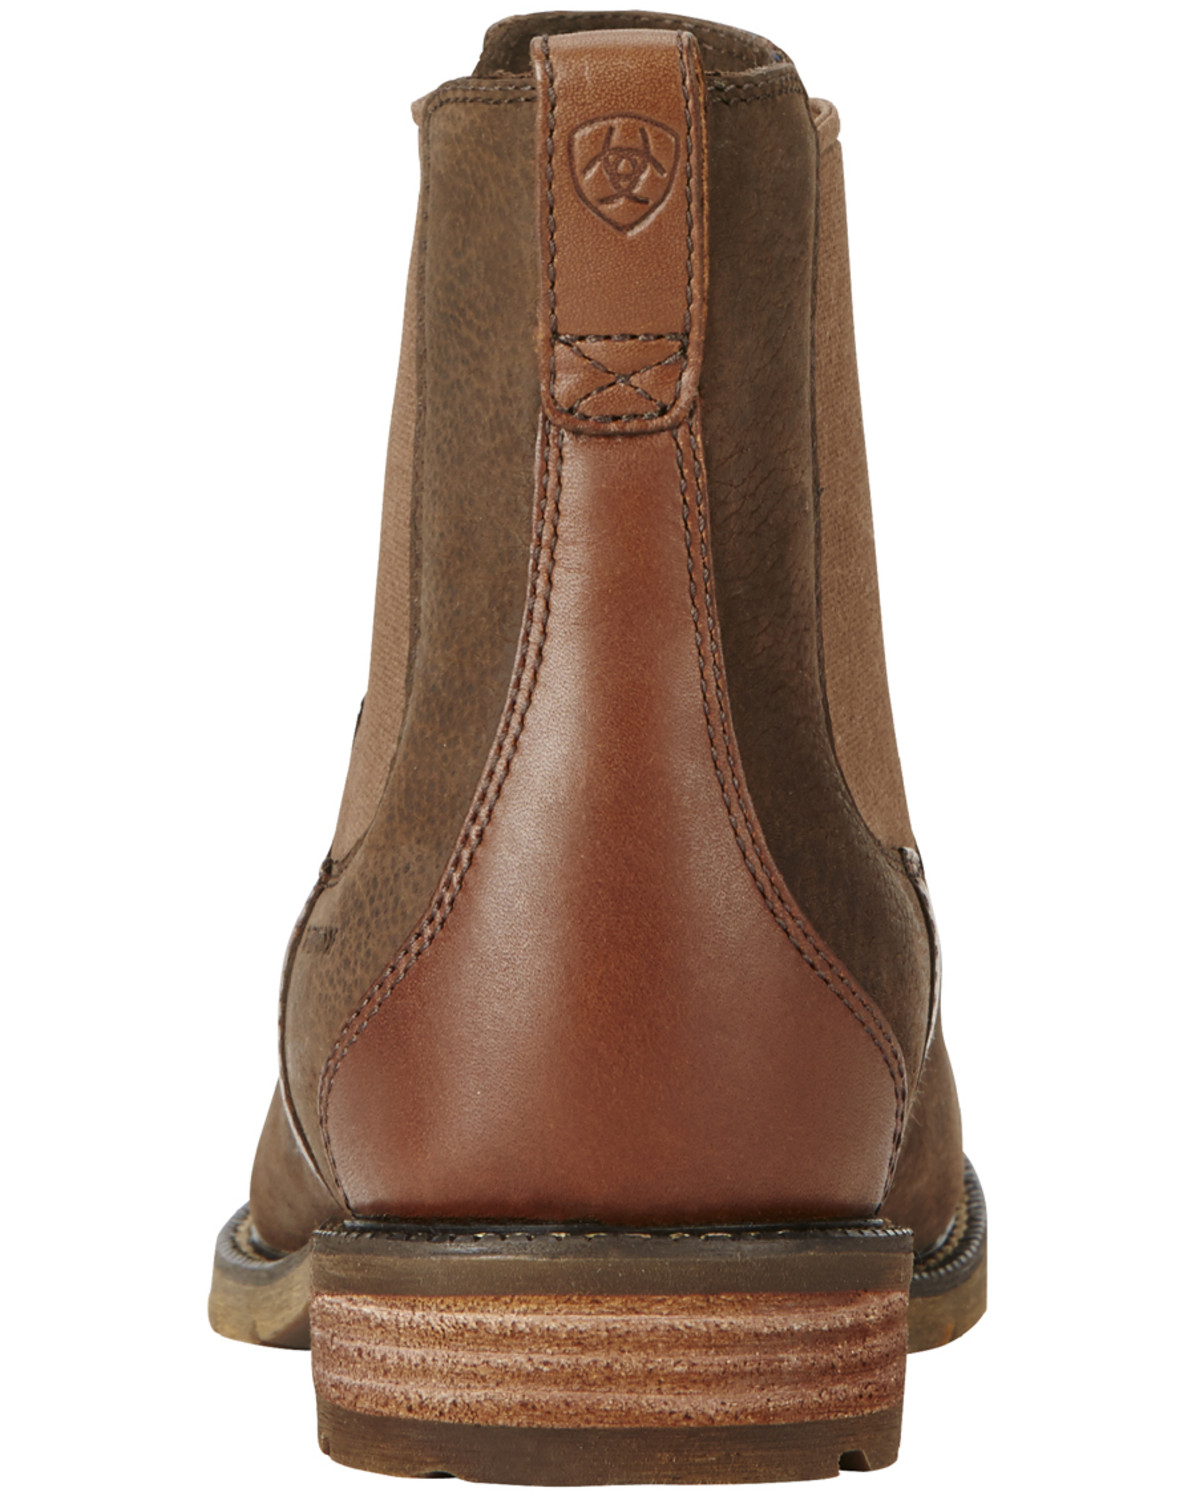 7dca7a432e51 Ariat Women s Wexford H2O Riding Boots - Country Outfitter